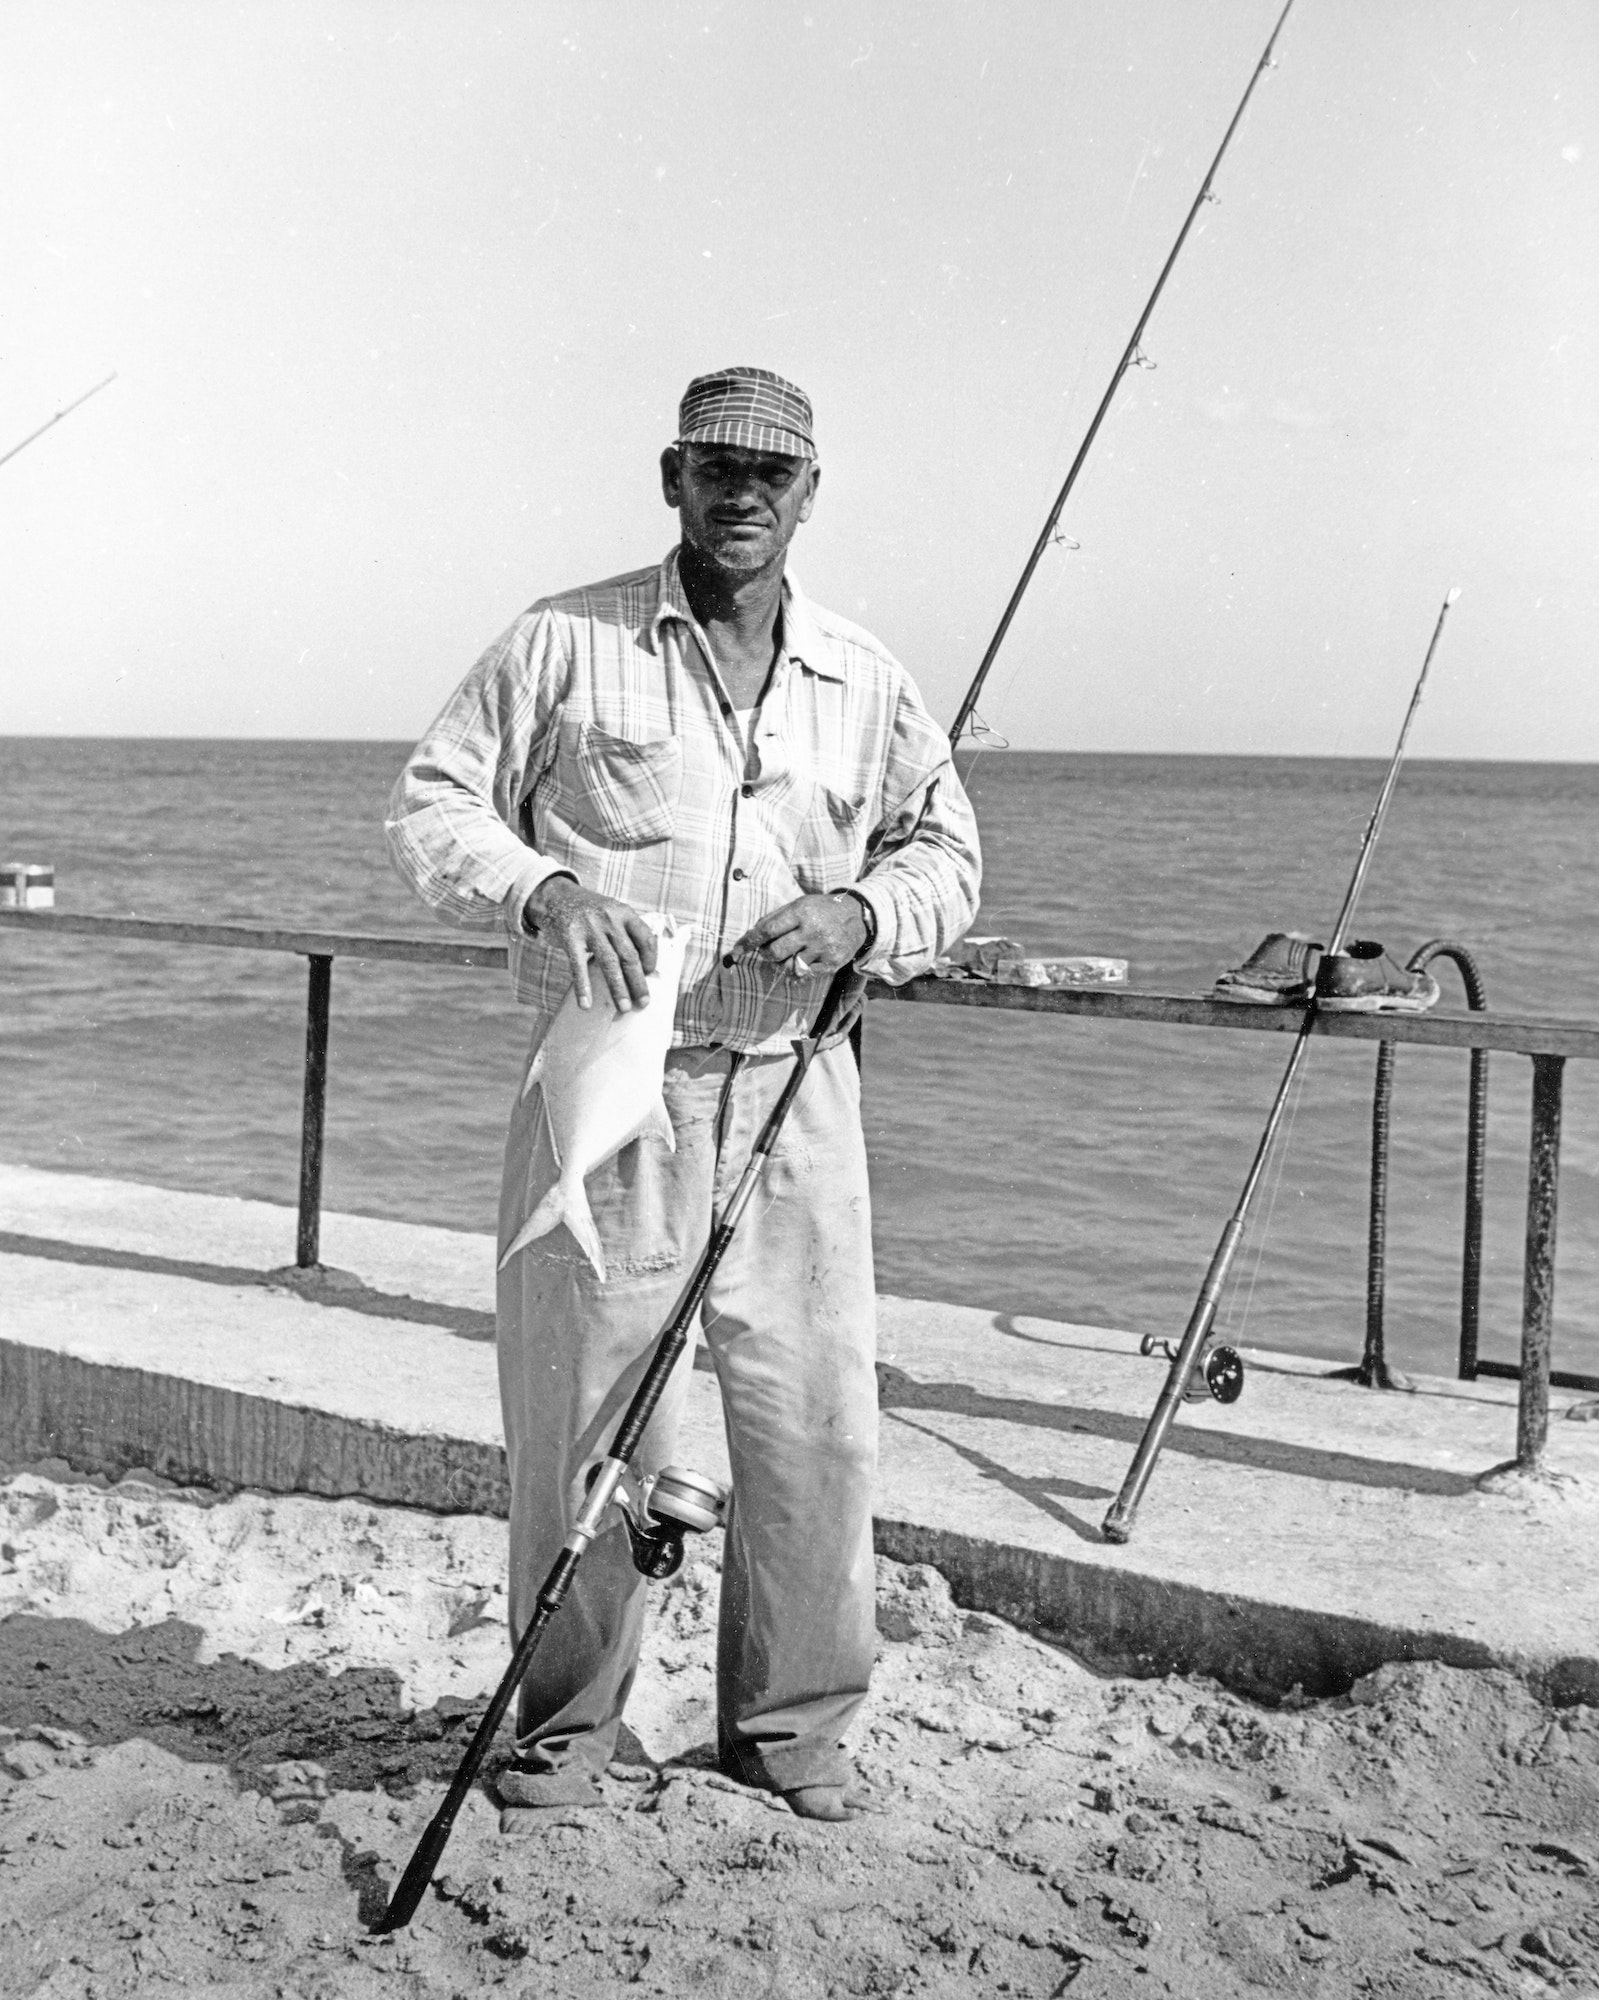 Fisherman standing with his rod and fish he caught on the jetty